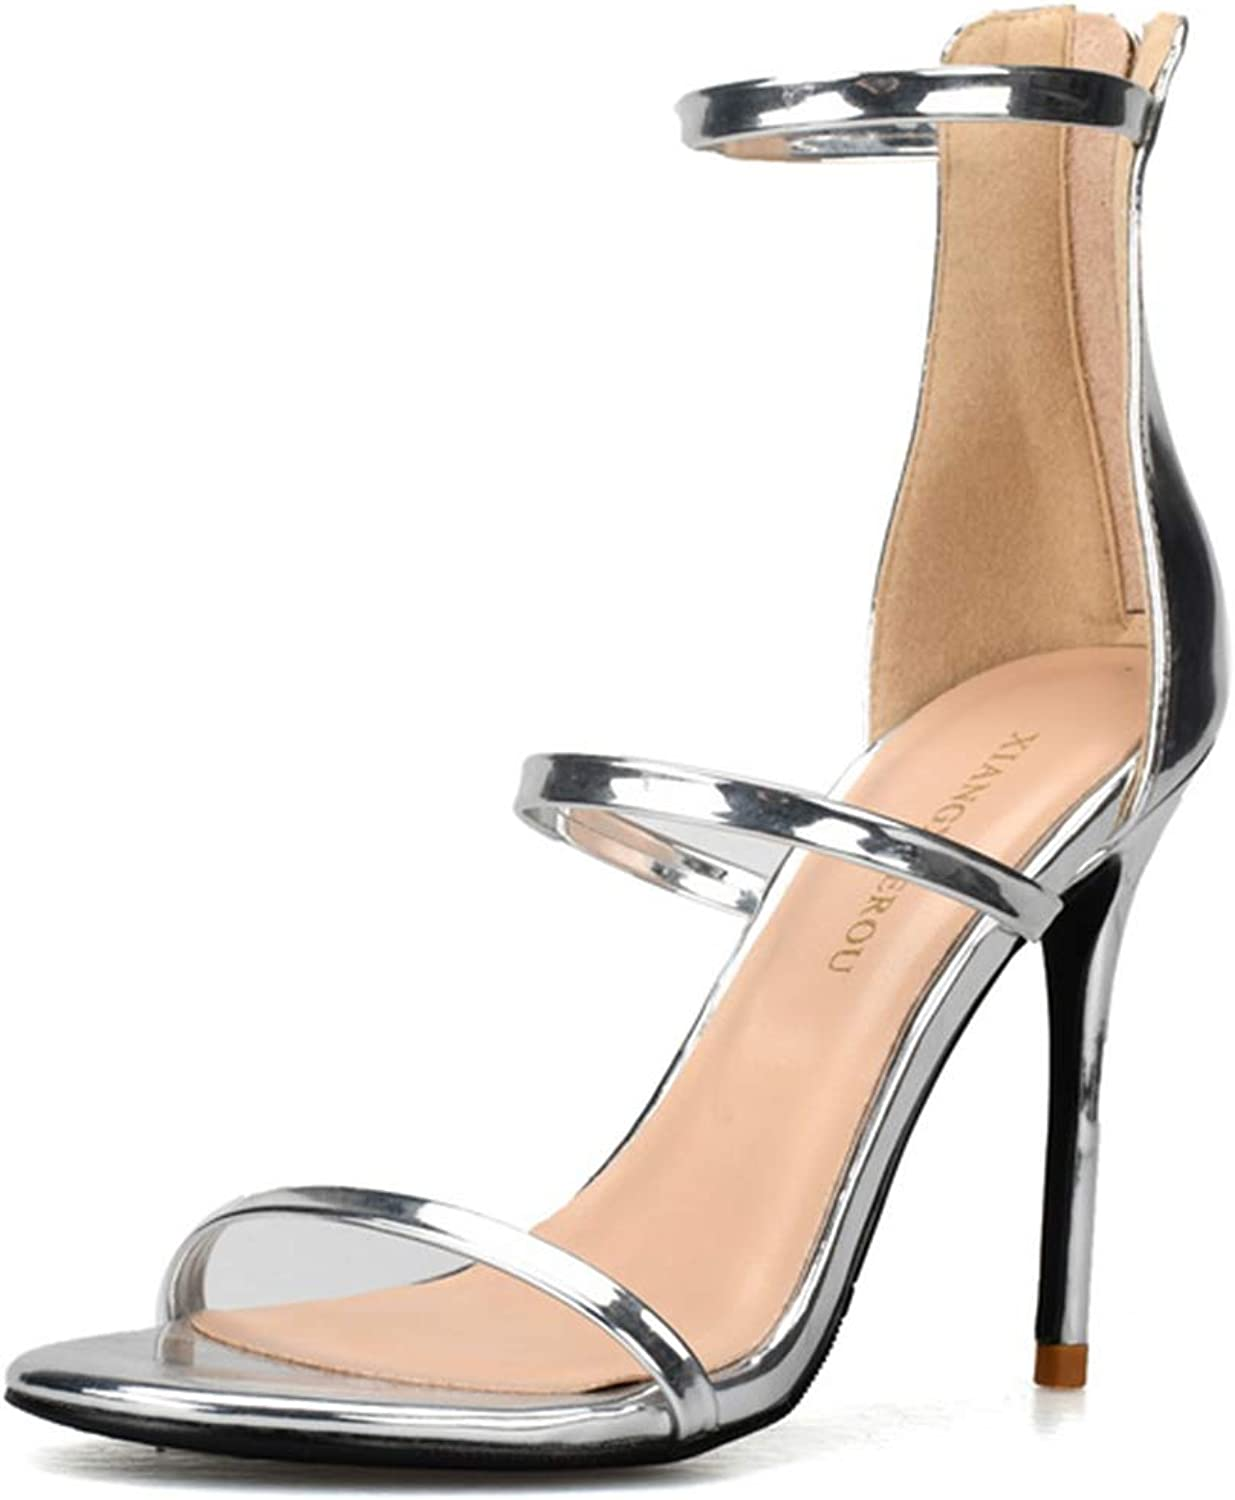 Soulength Women's Classic Peep Toe Heeled Sandals 10cm Sexy Patent Leather Open Toe Pumps Stylish and Elegant Lightweight Non-Slip shoes,lyx3